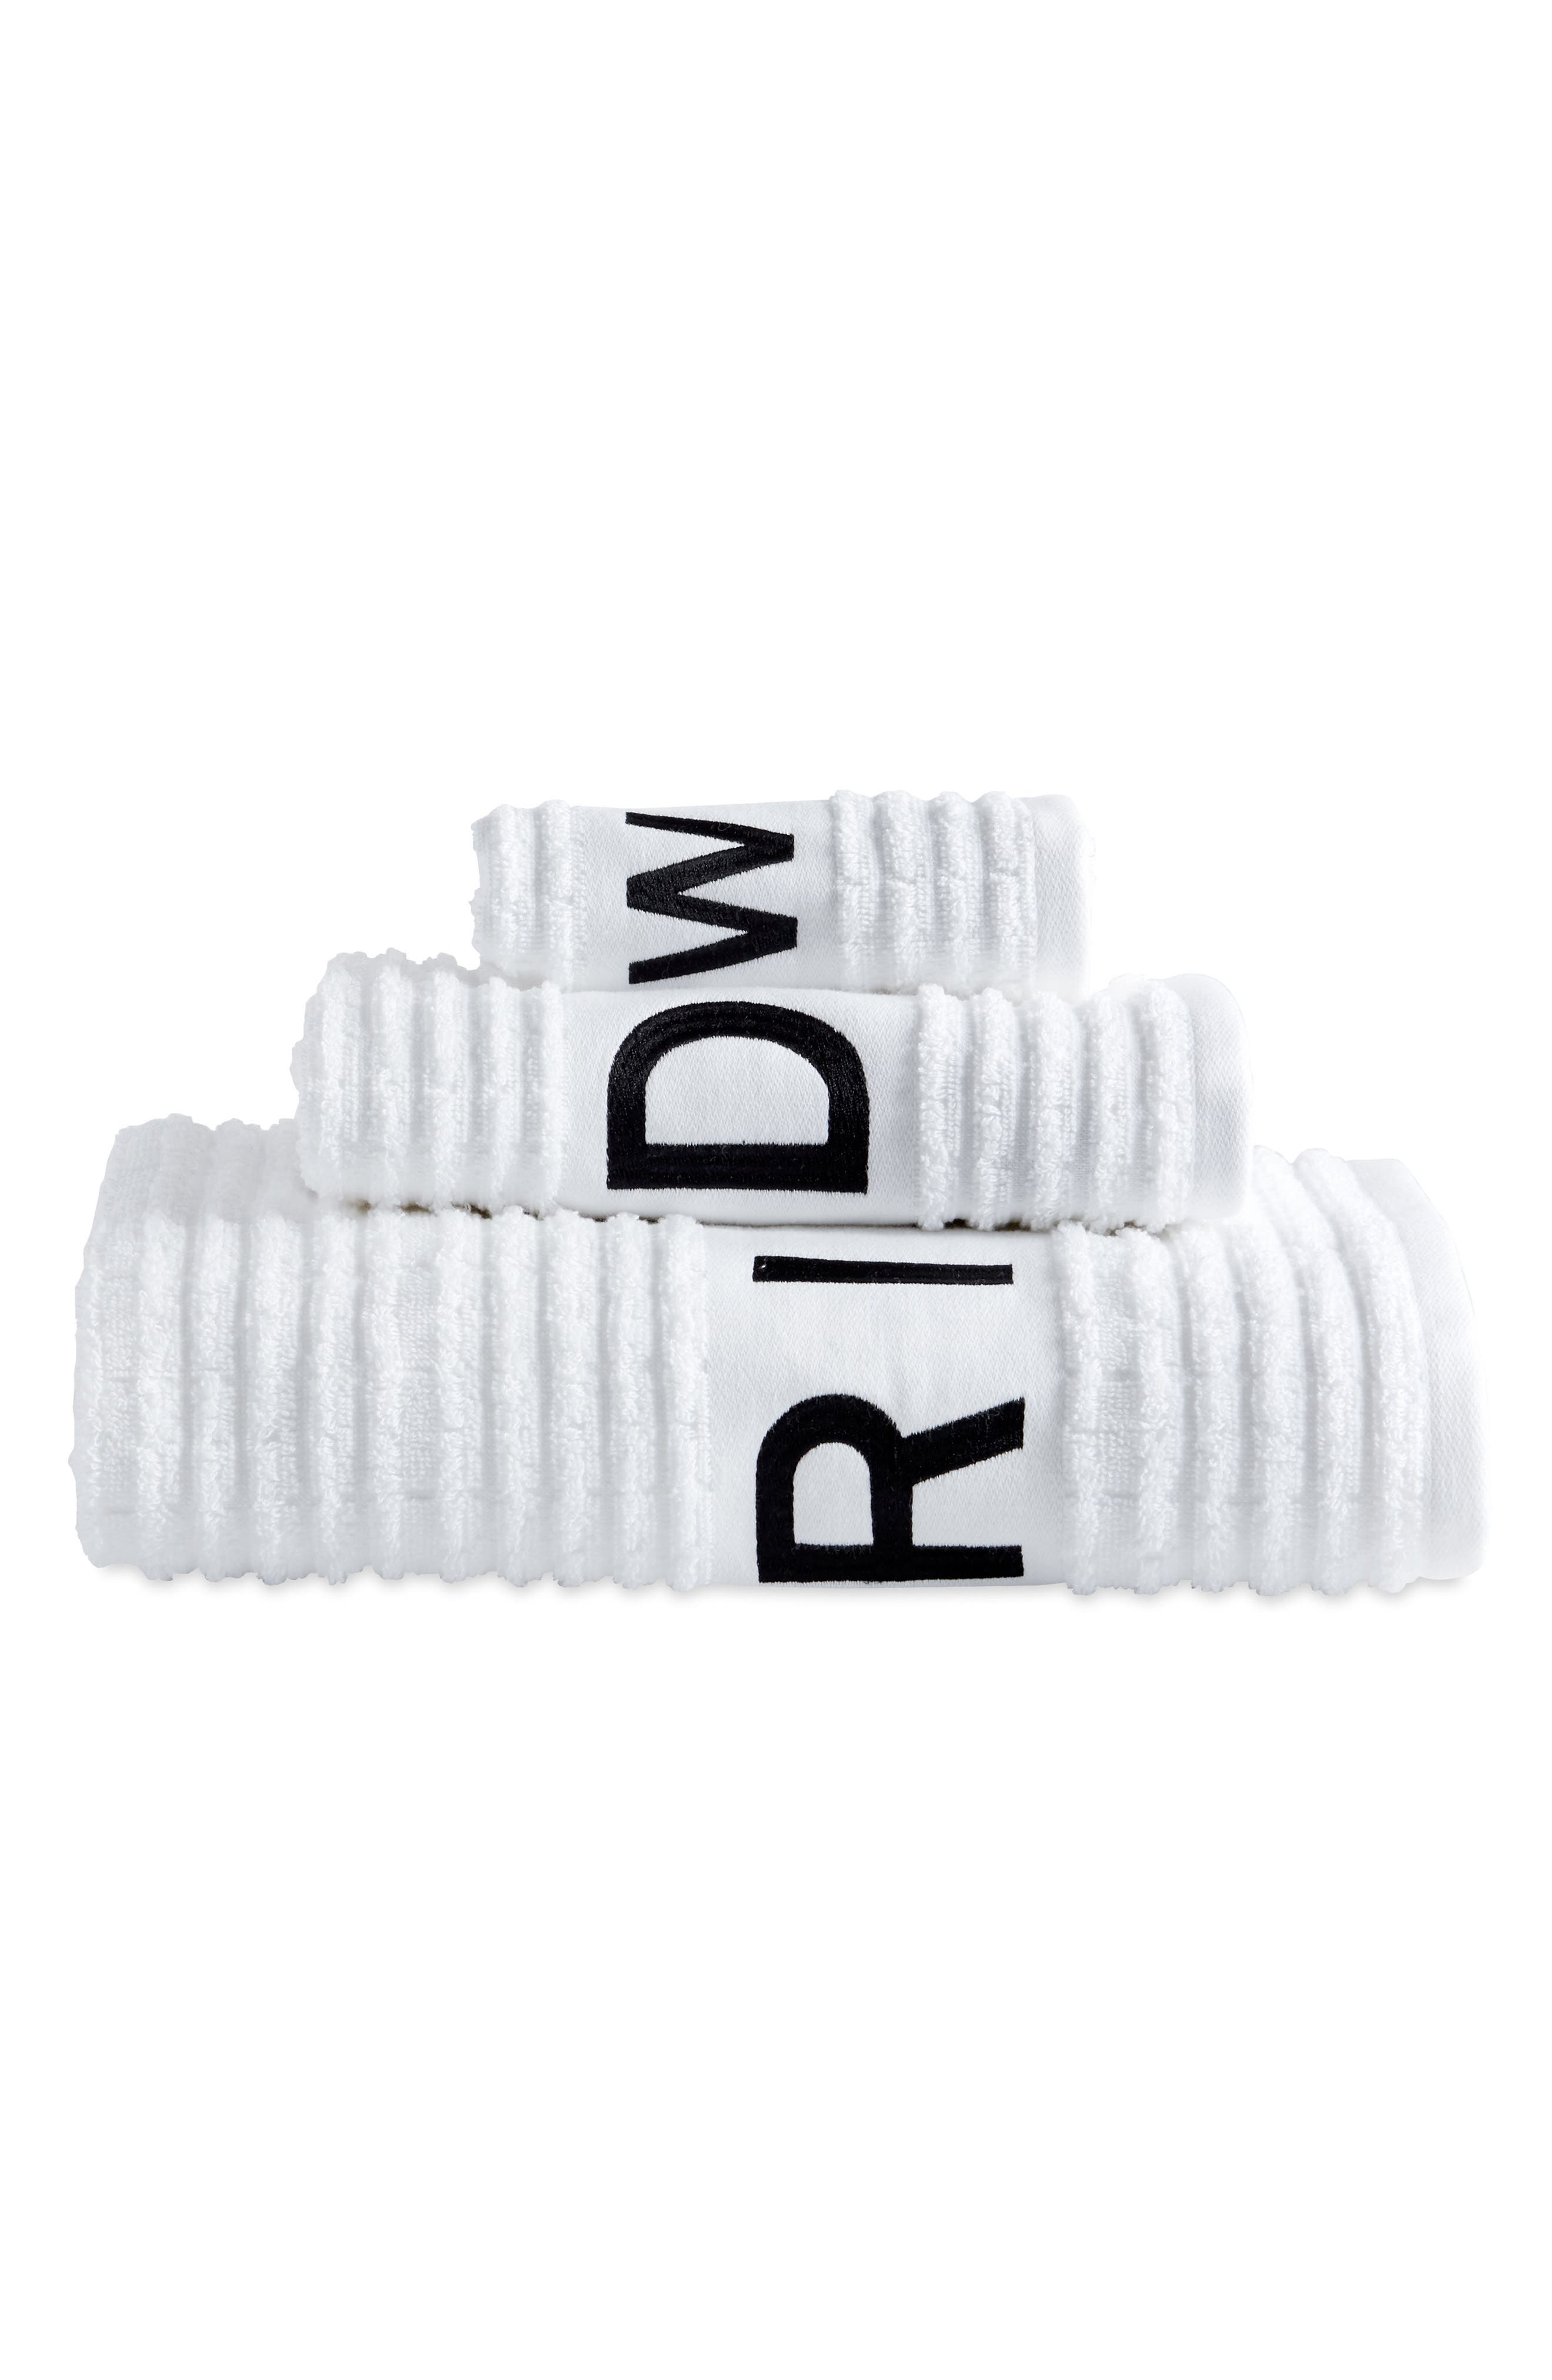 Main Image - DKNY Chatter Set of 3 Towels